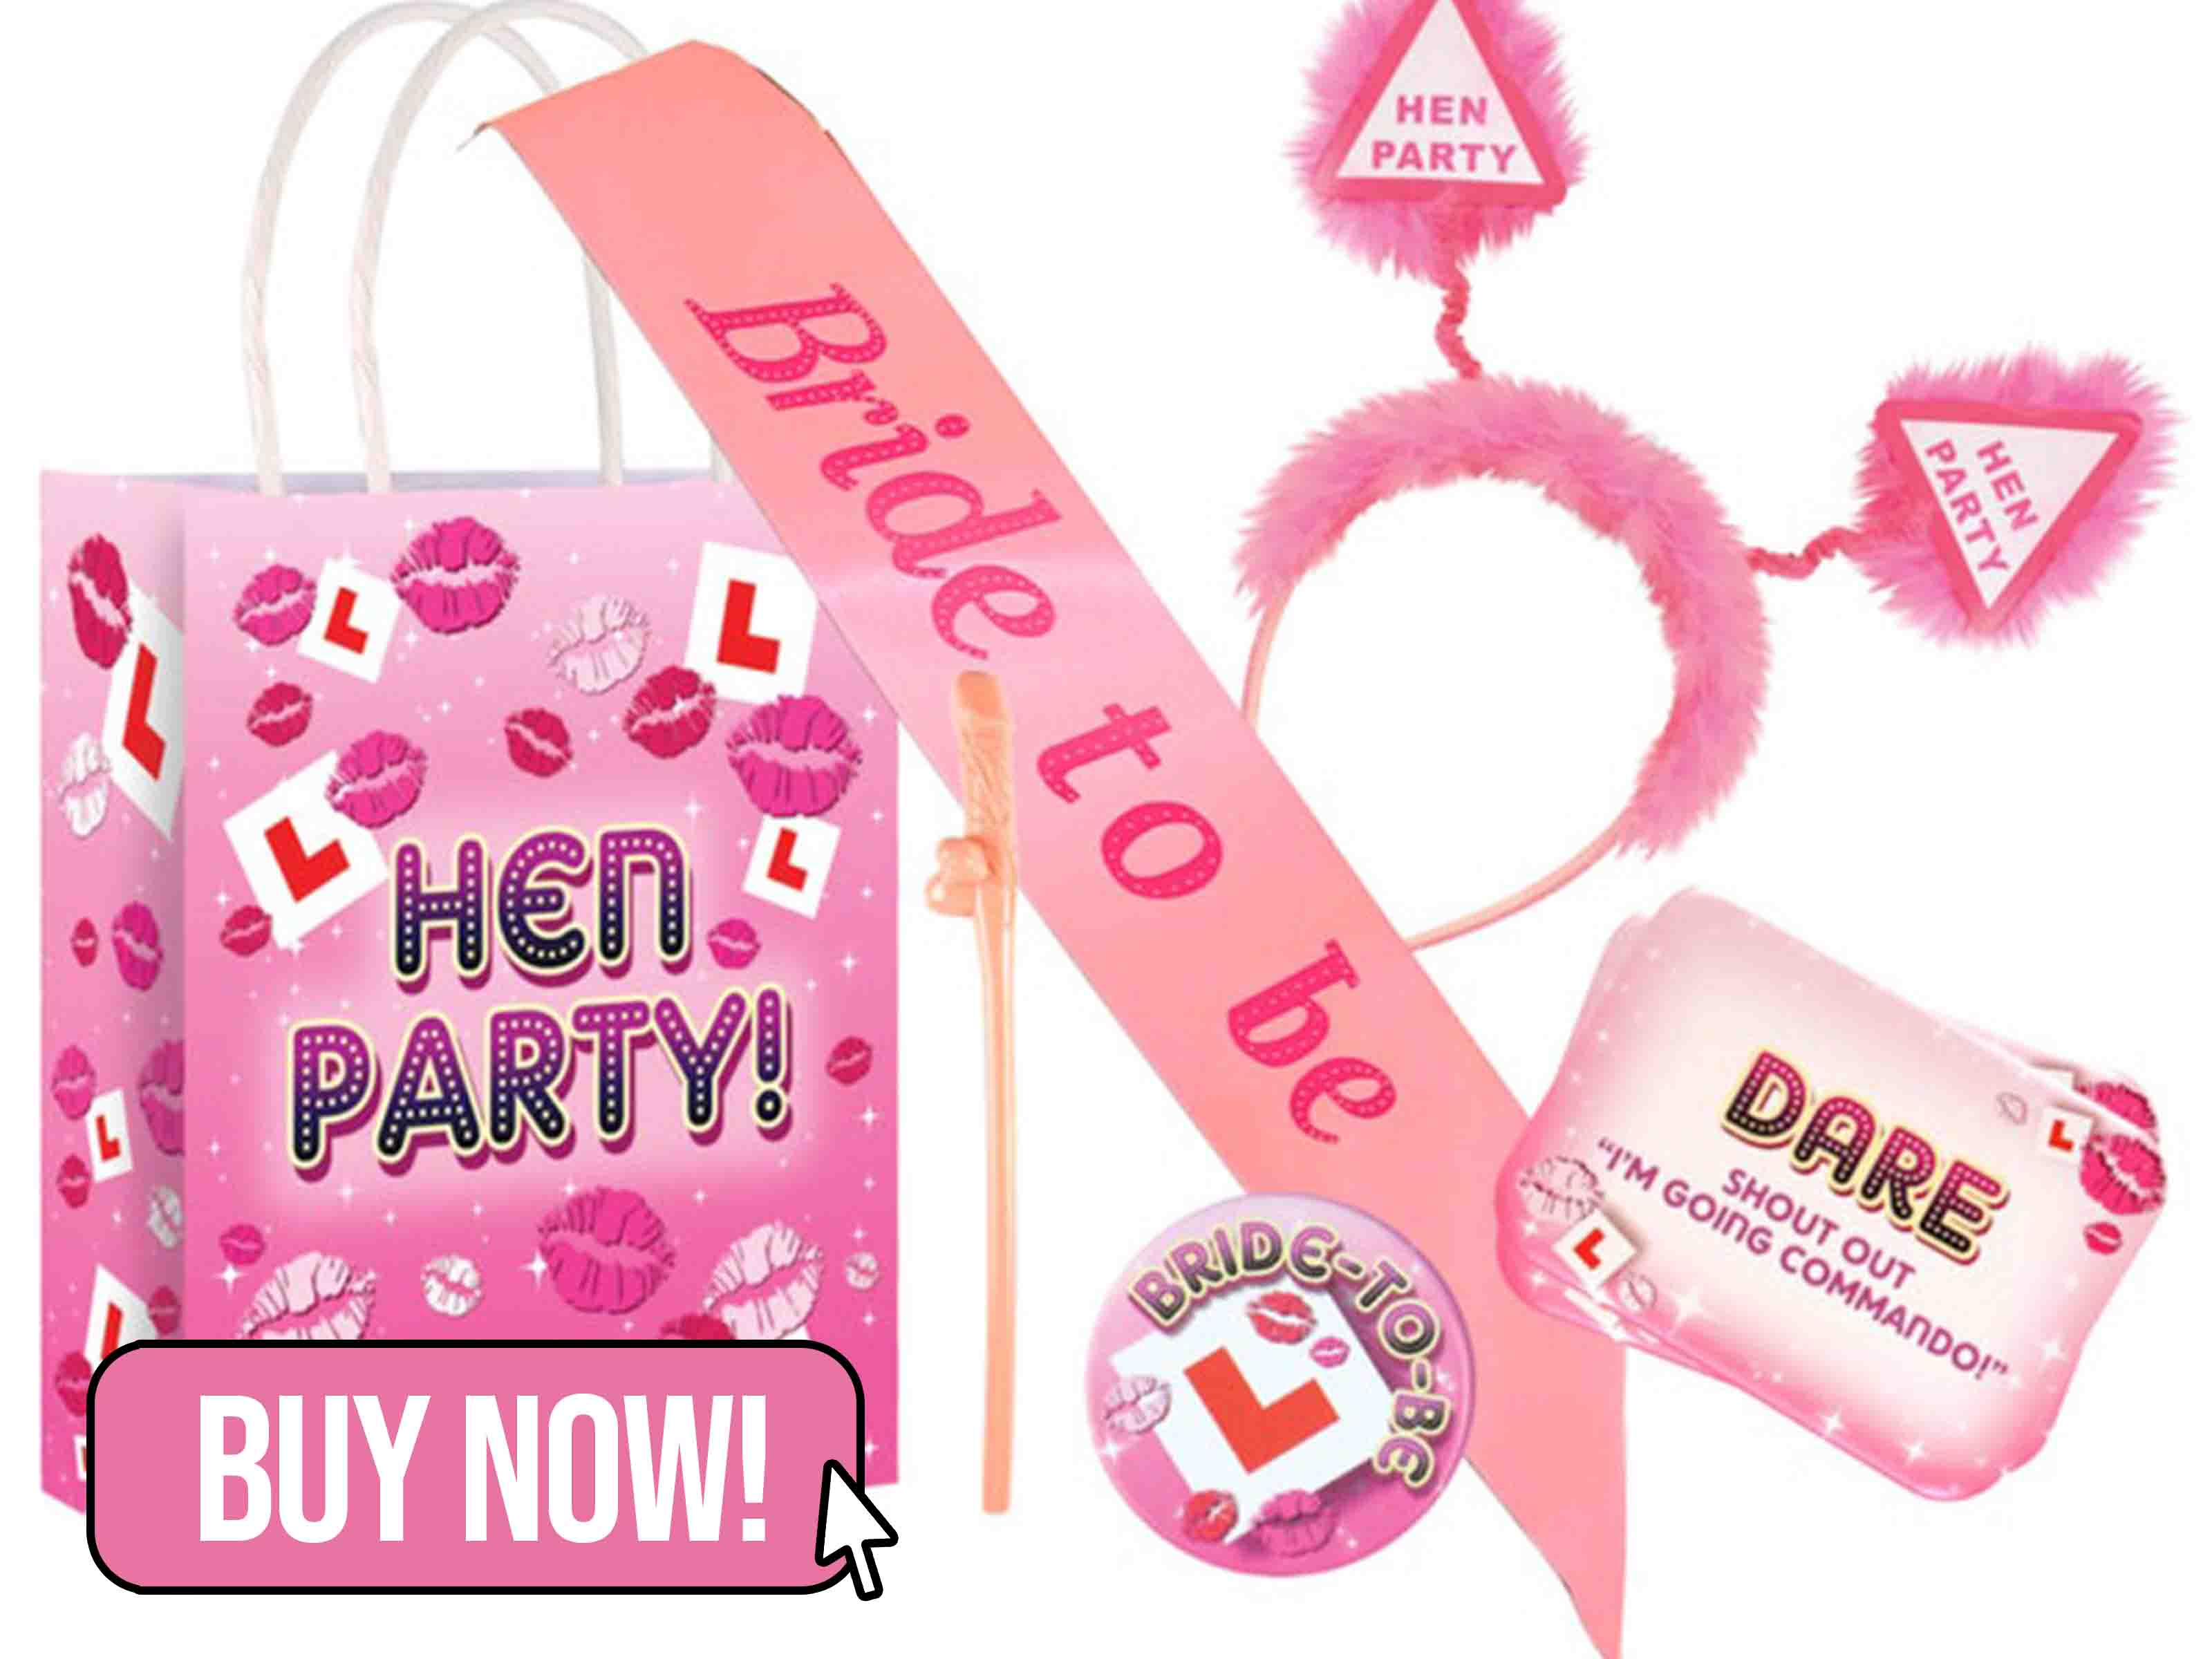 Hen Party Bag filled with 5 Items - JJSOccasions